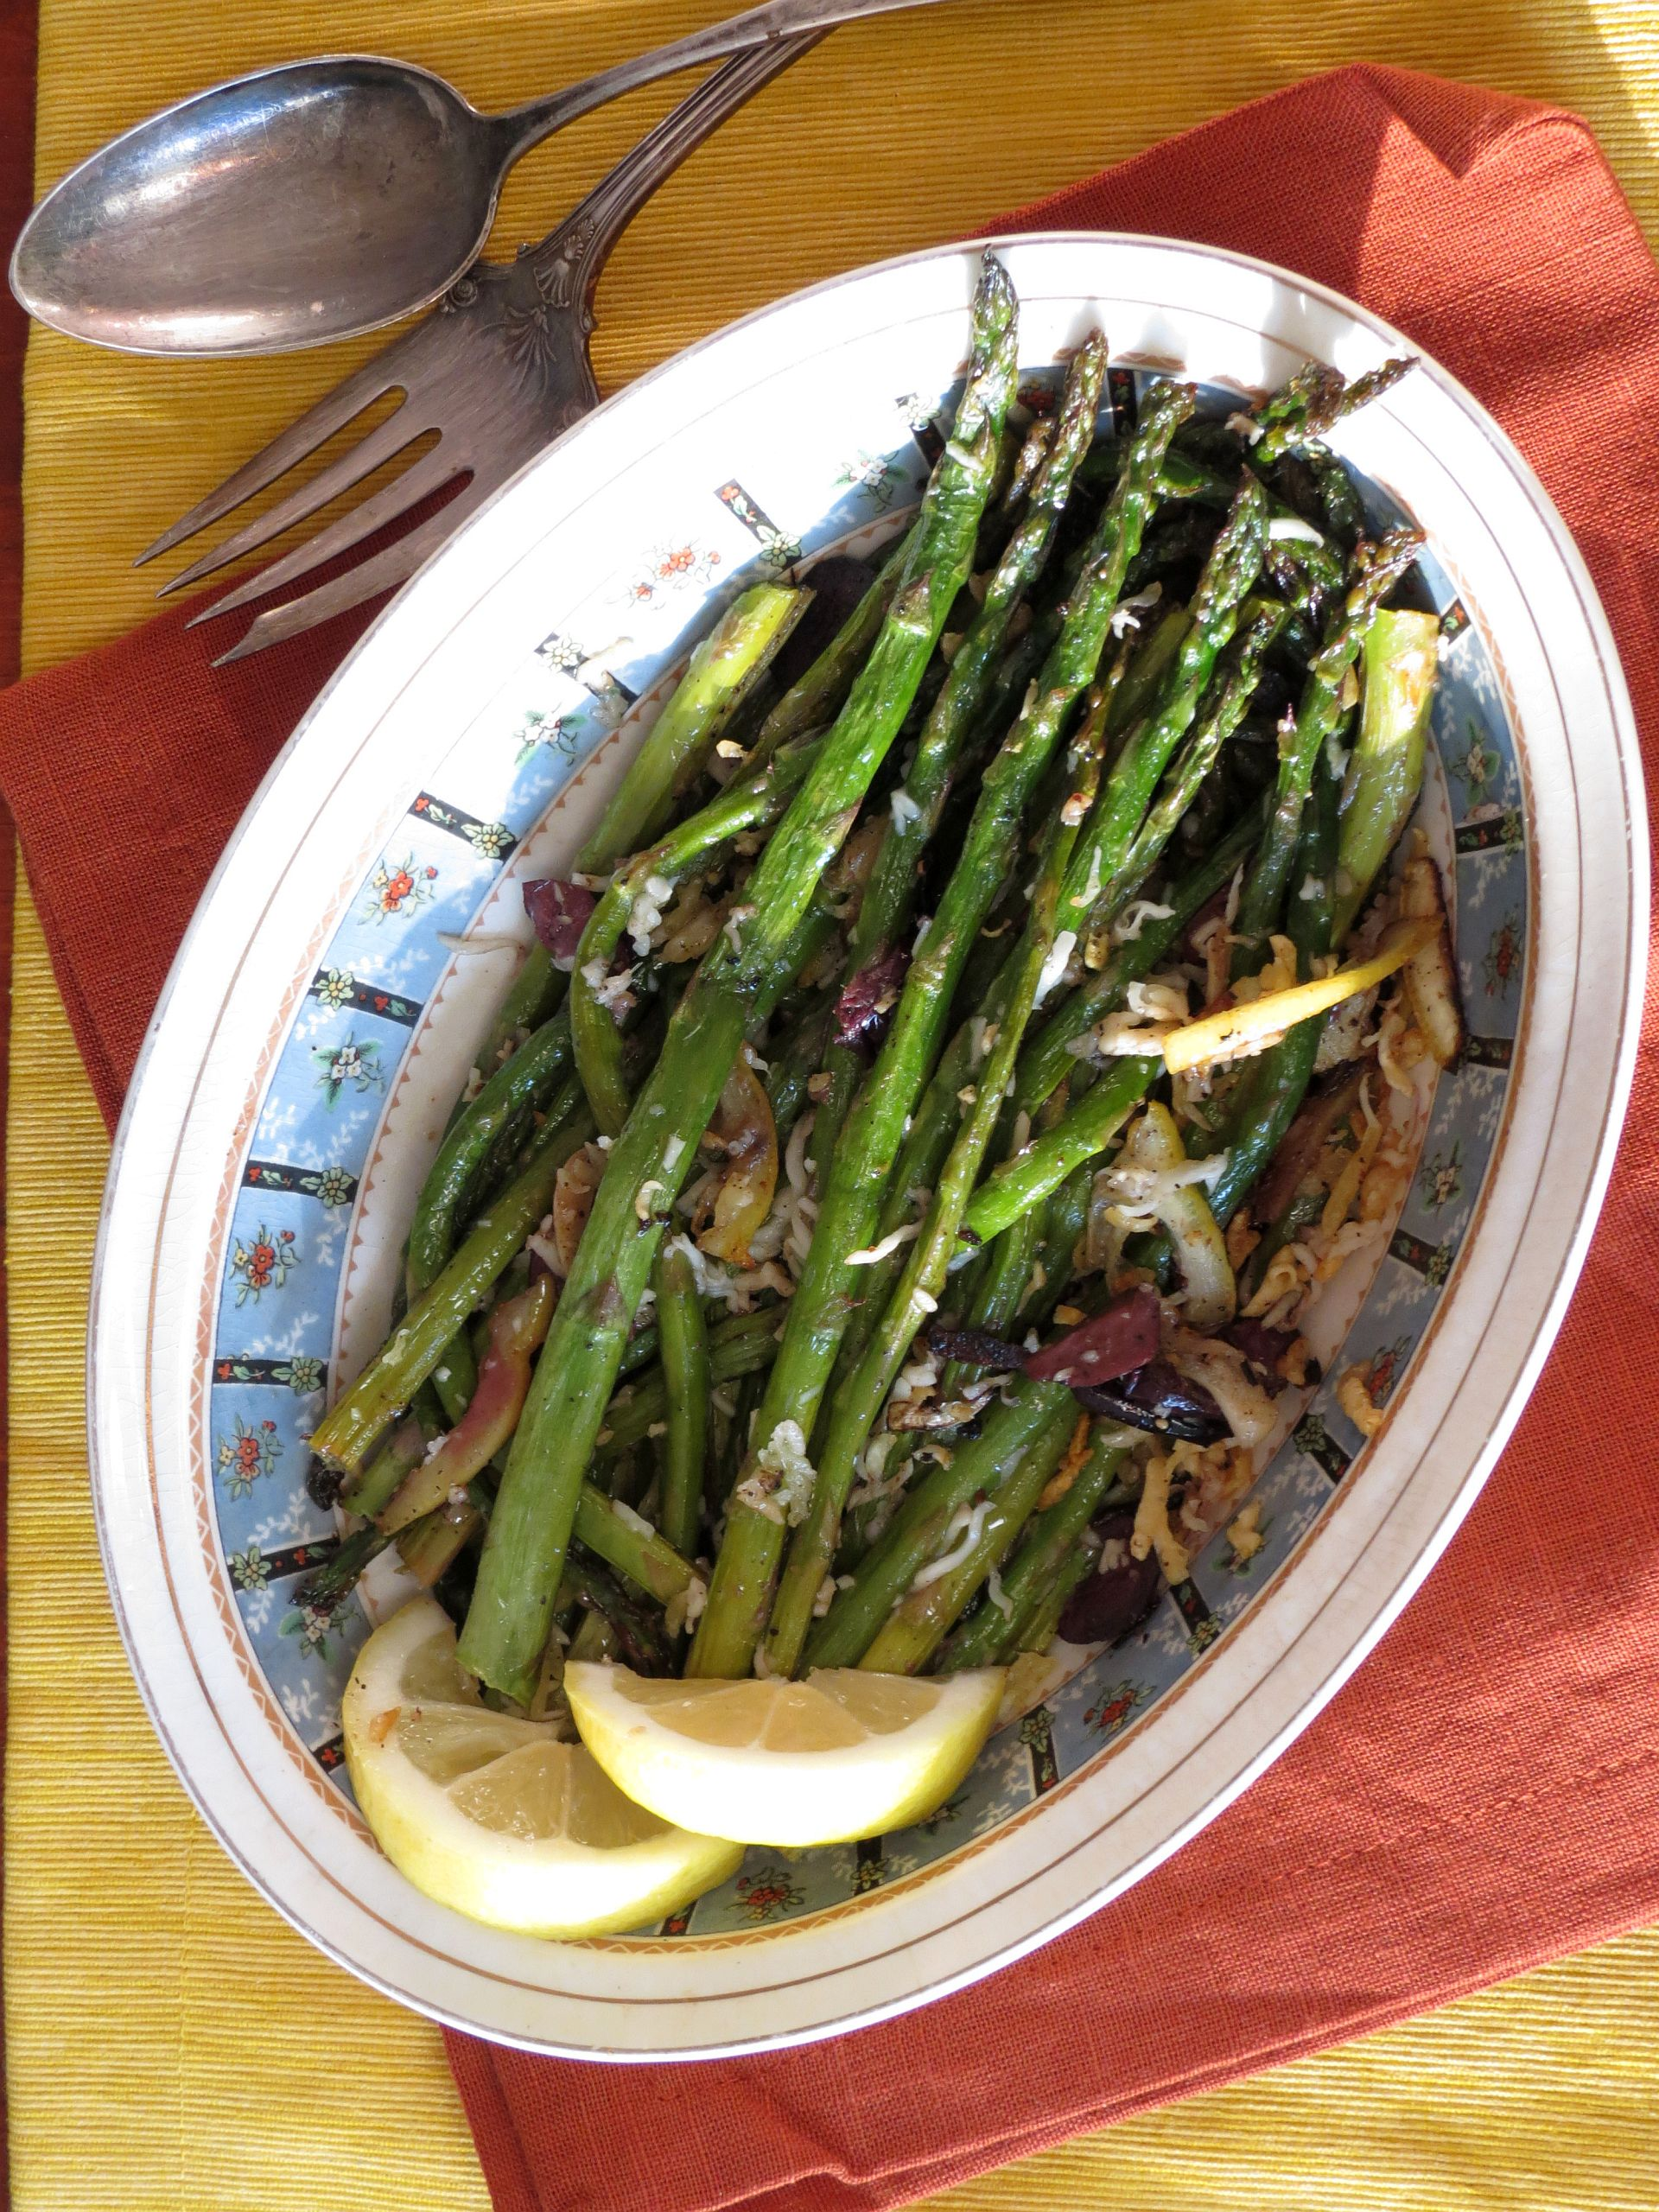 Roasted Asparagus Recipe - The Frugal Chef